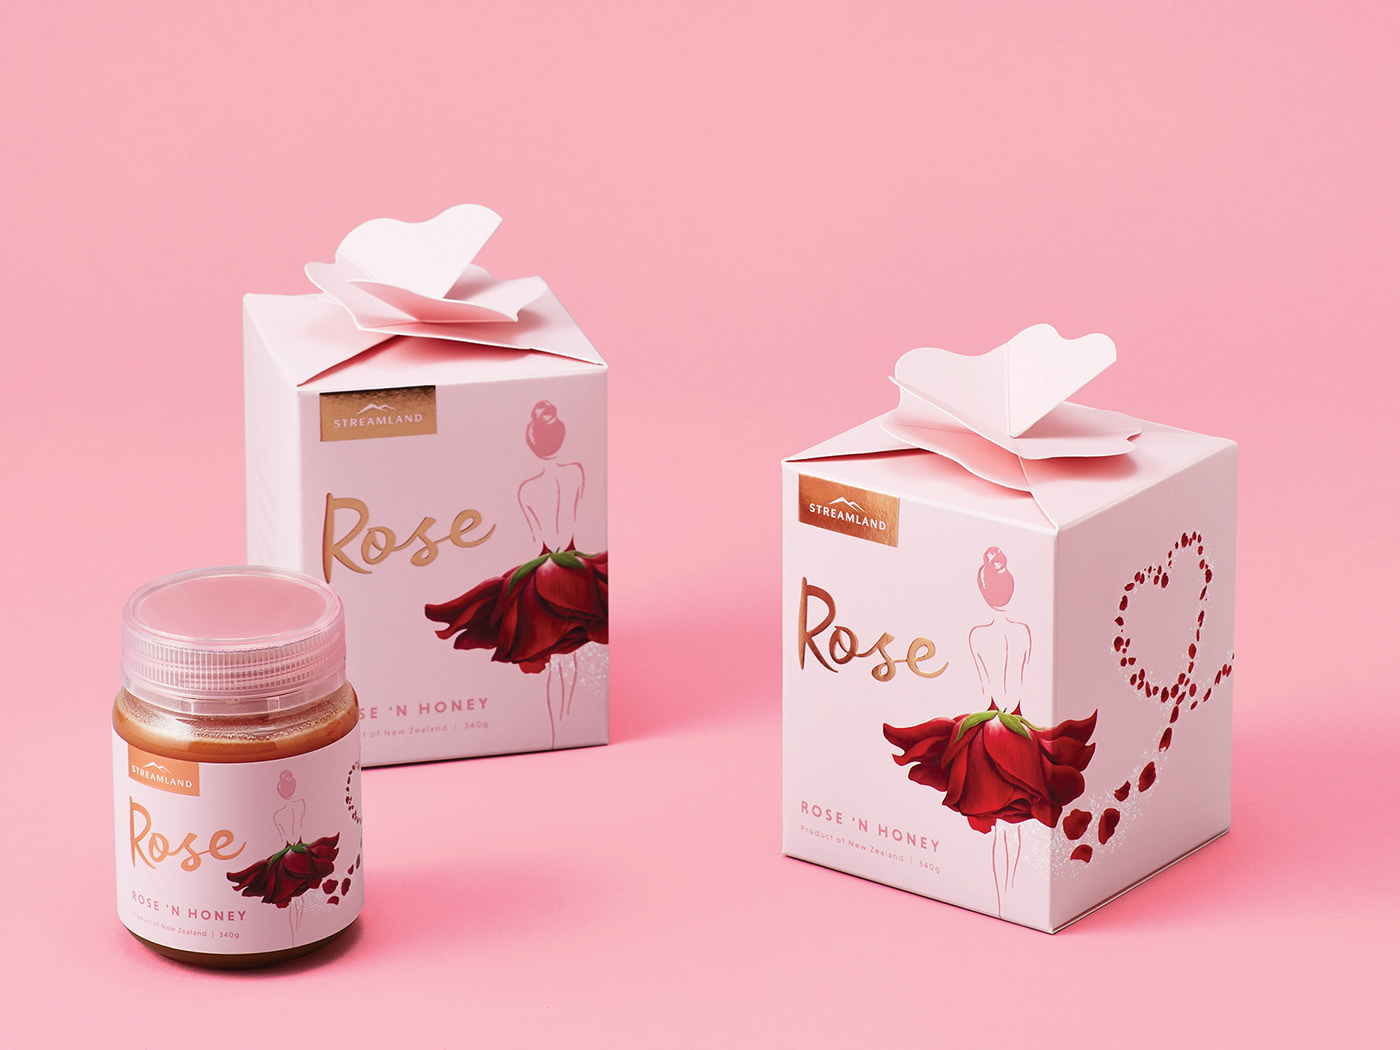 Streamland Rose Honey on Behance